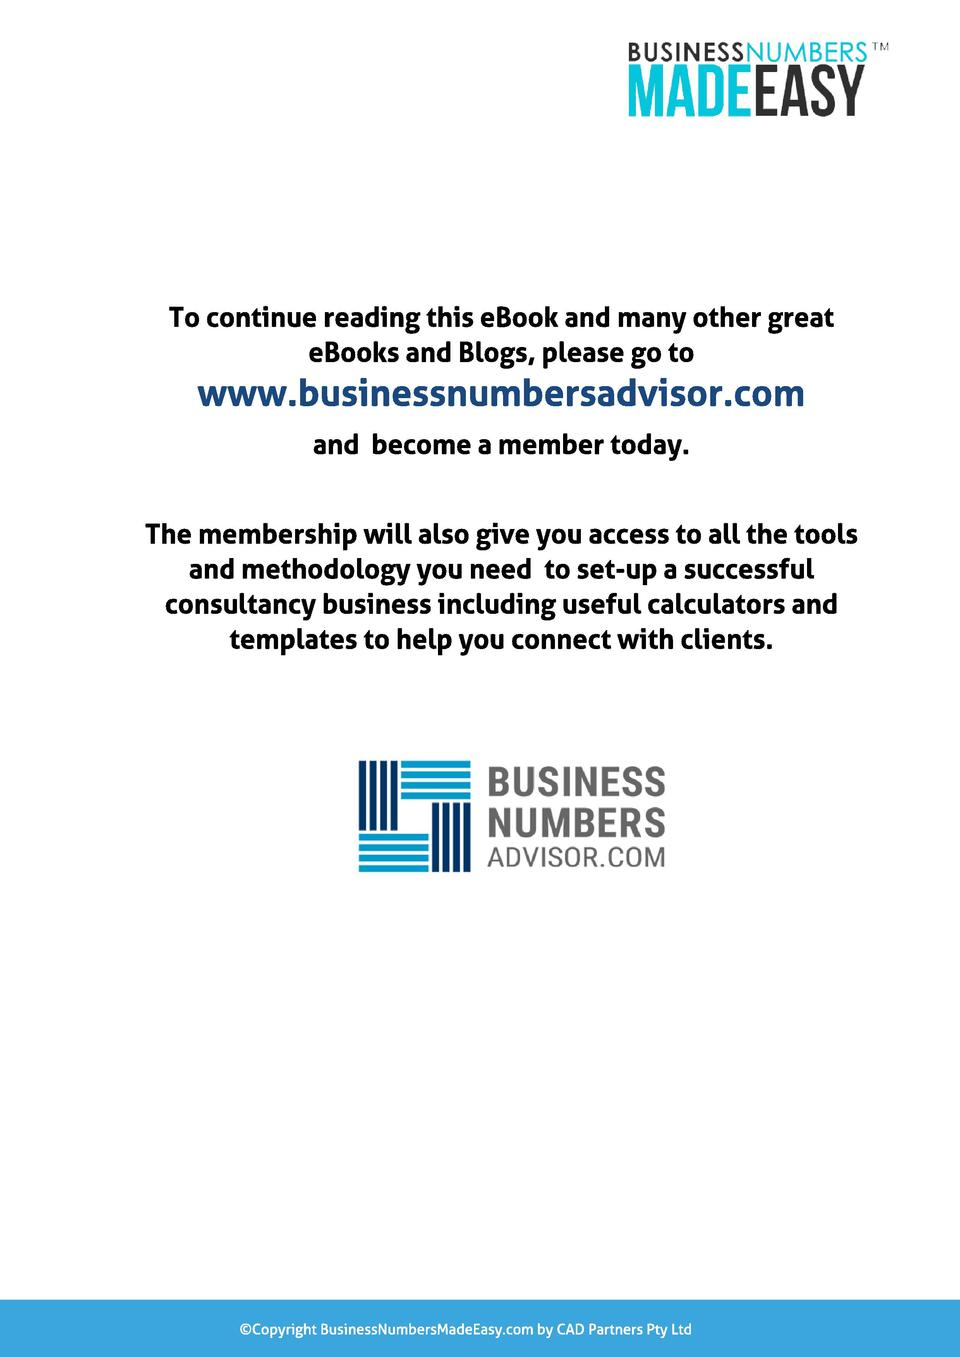 To cont inue reading t his eBook and many ot her great eBooks and Bl ogs, pl ease go t o  www.businessnumbersadvisor.com a...